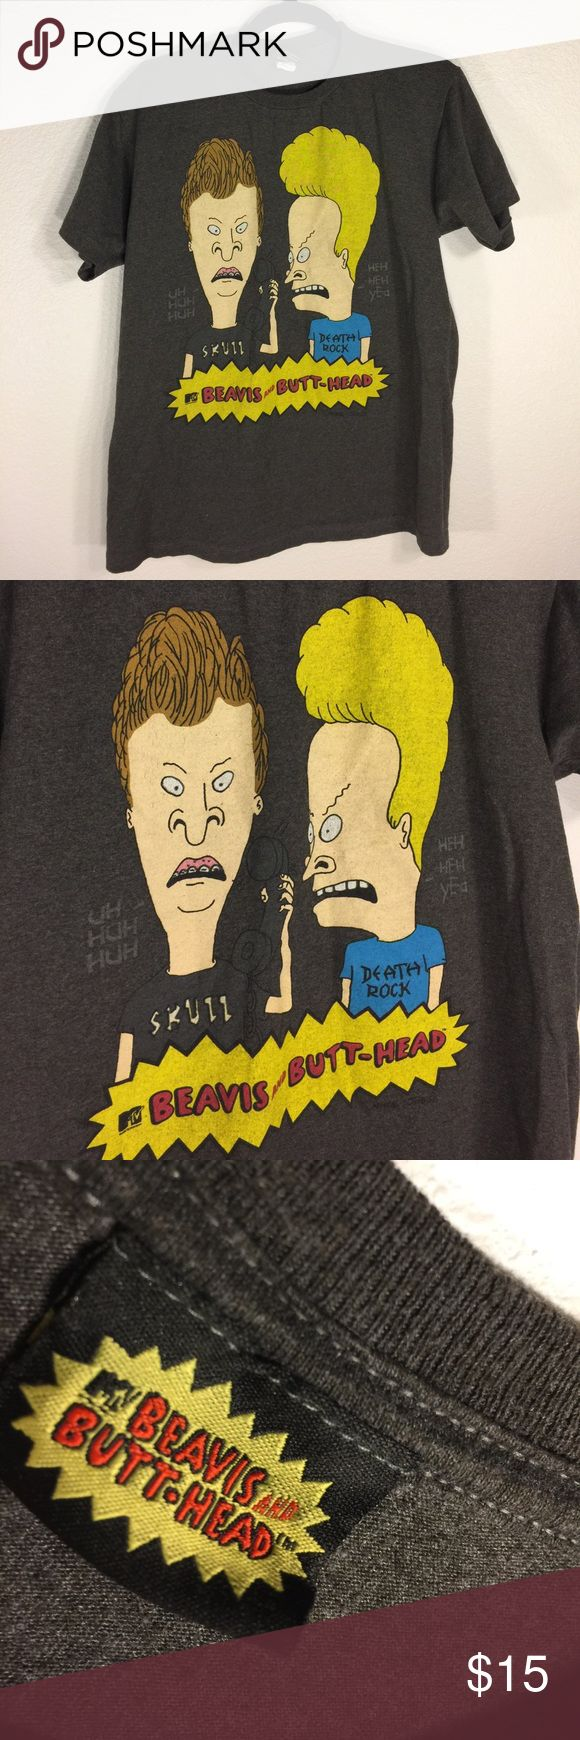 Beavis And Butthead T Shirt - Sz Medium MTV's Beavis And Butthead T Shirt | Sz M | Condition: Pre-Owned (Washed, worn, good condition! No major flaws!) Beavis and Butthead Shirts Tees - Short Sleeve